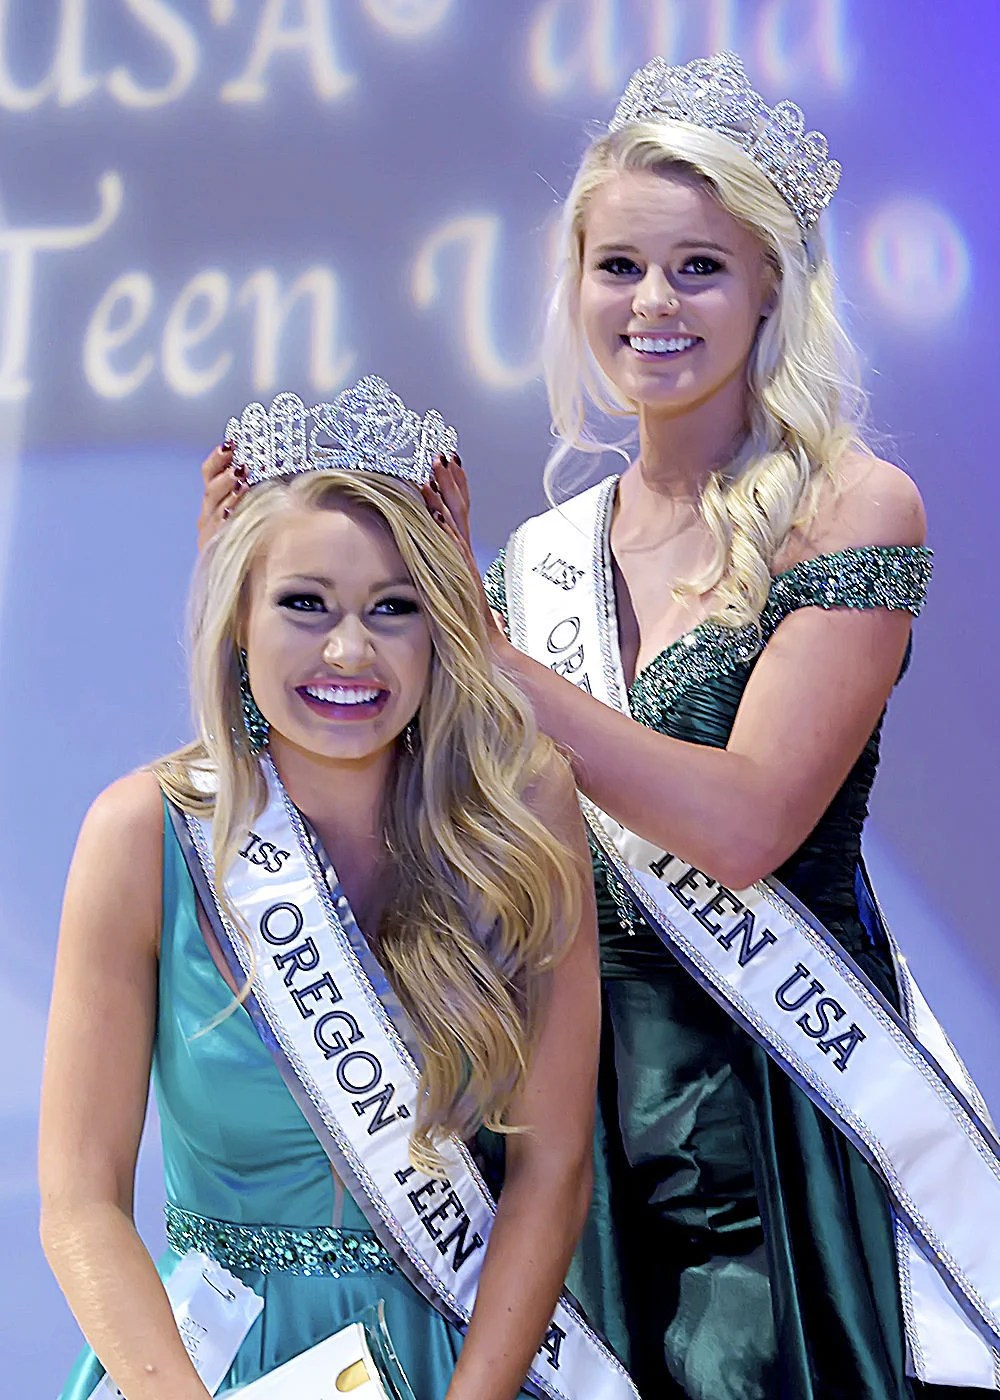 Local teen wins state pageant title  Klamath  heraldandnewscom